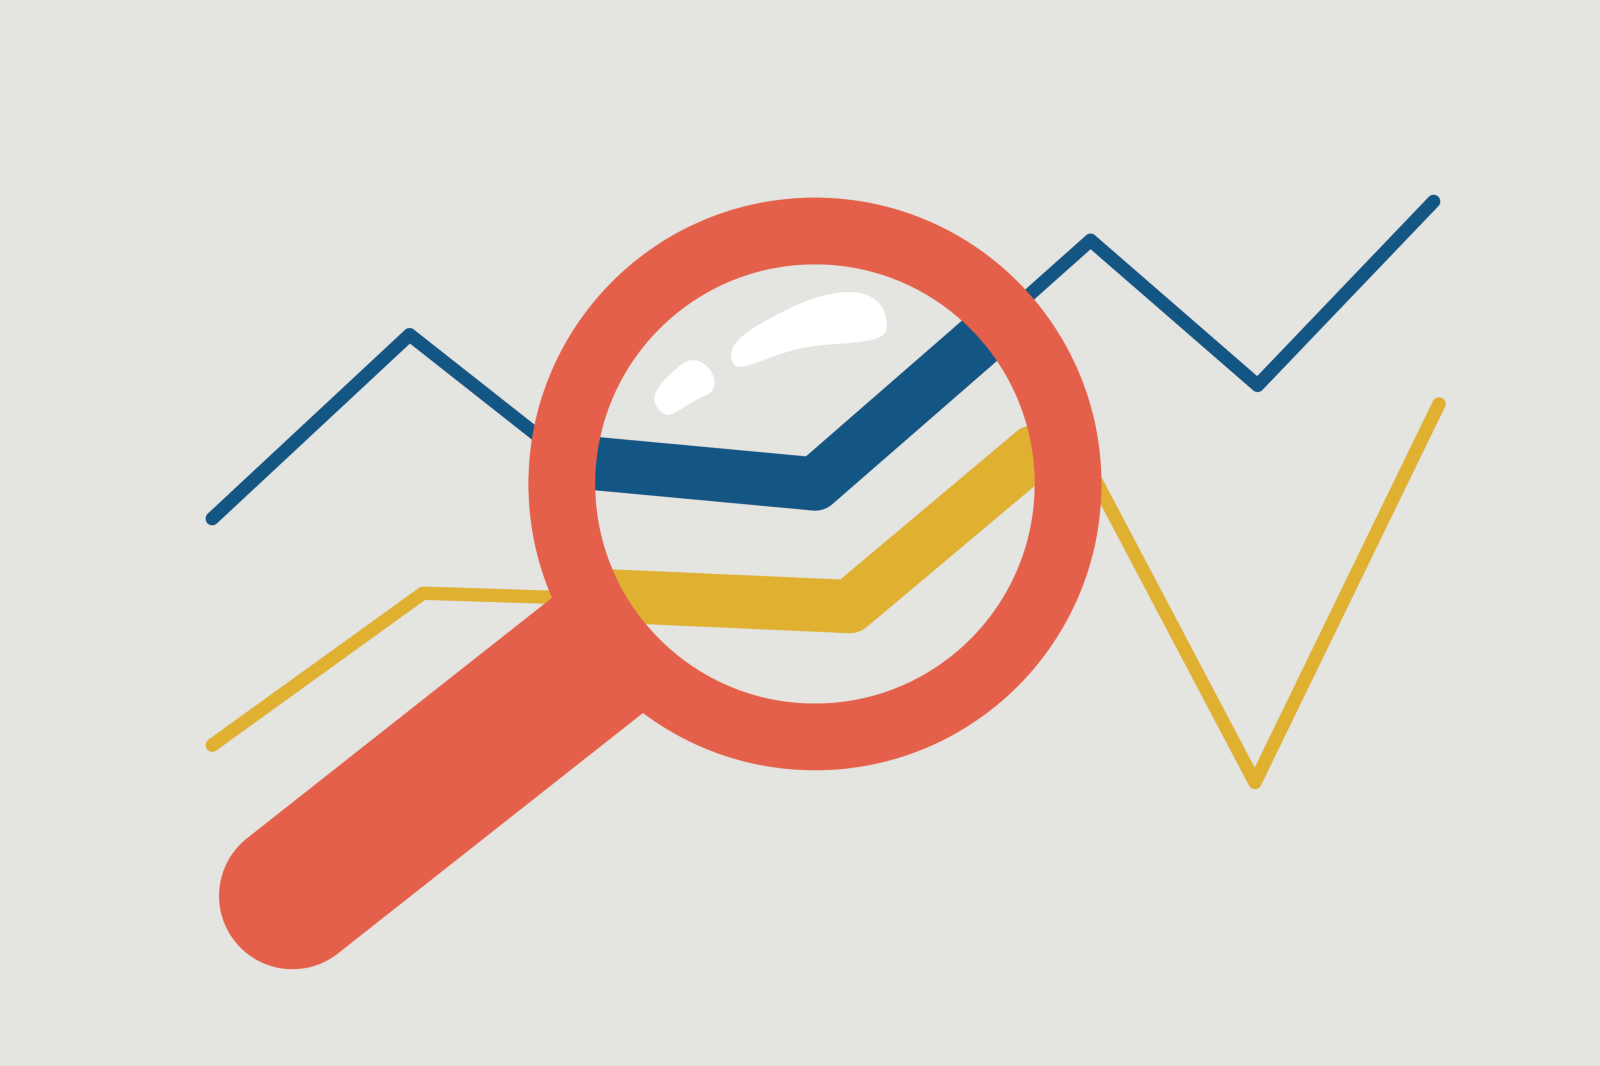 Upward Trend Graph Under Magnifying Glass Image